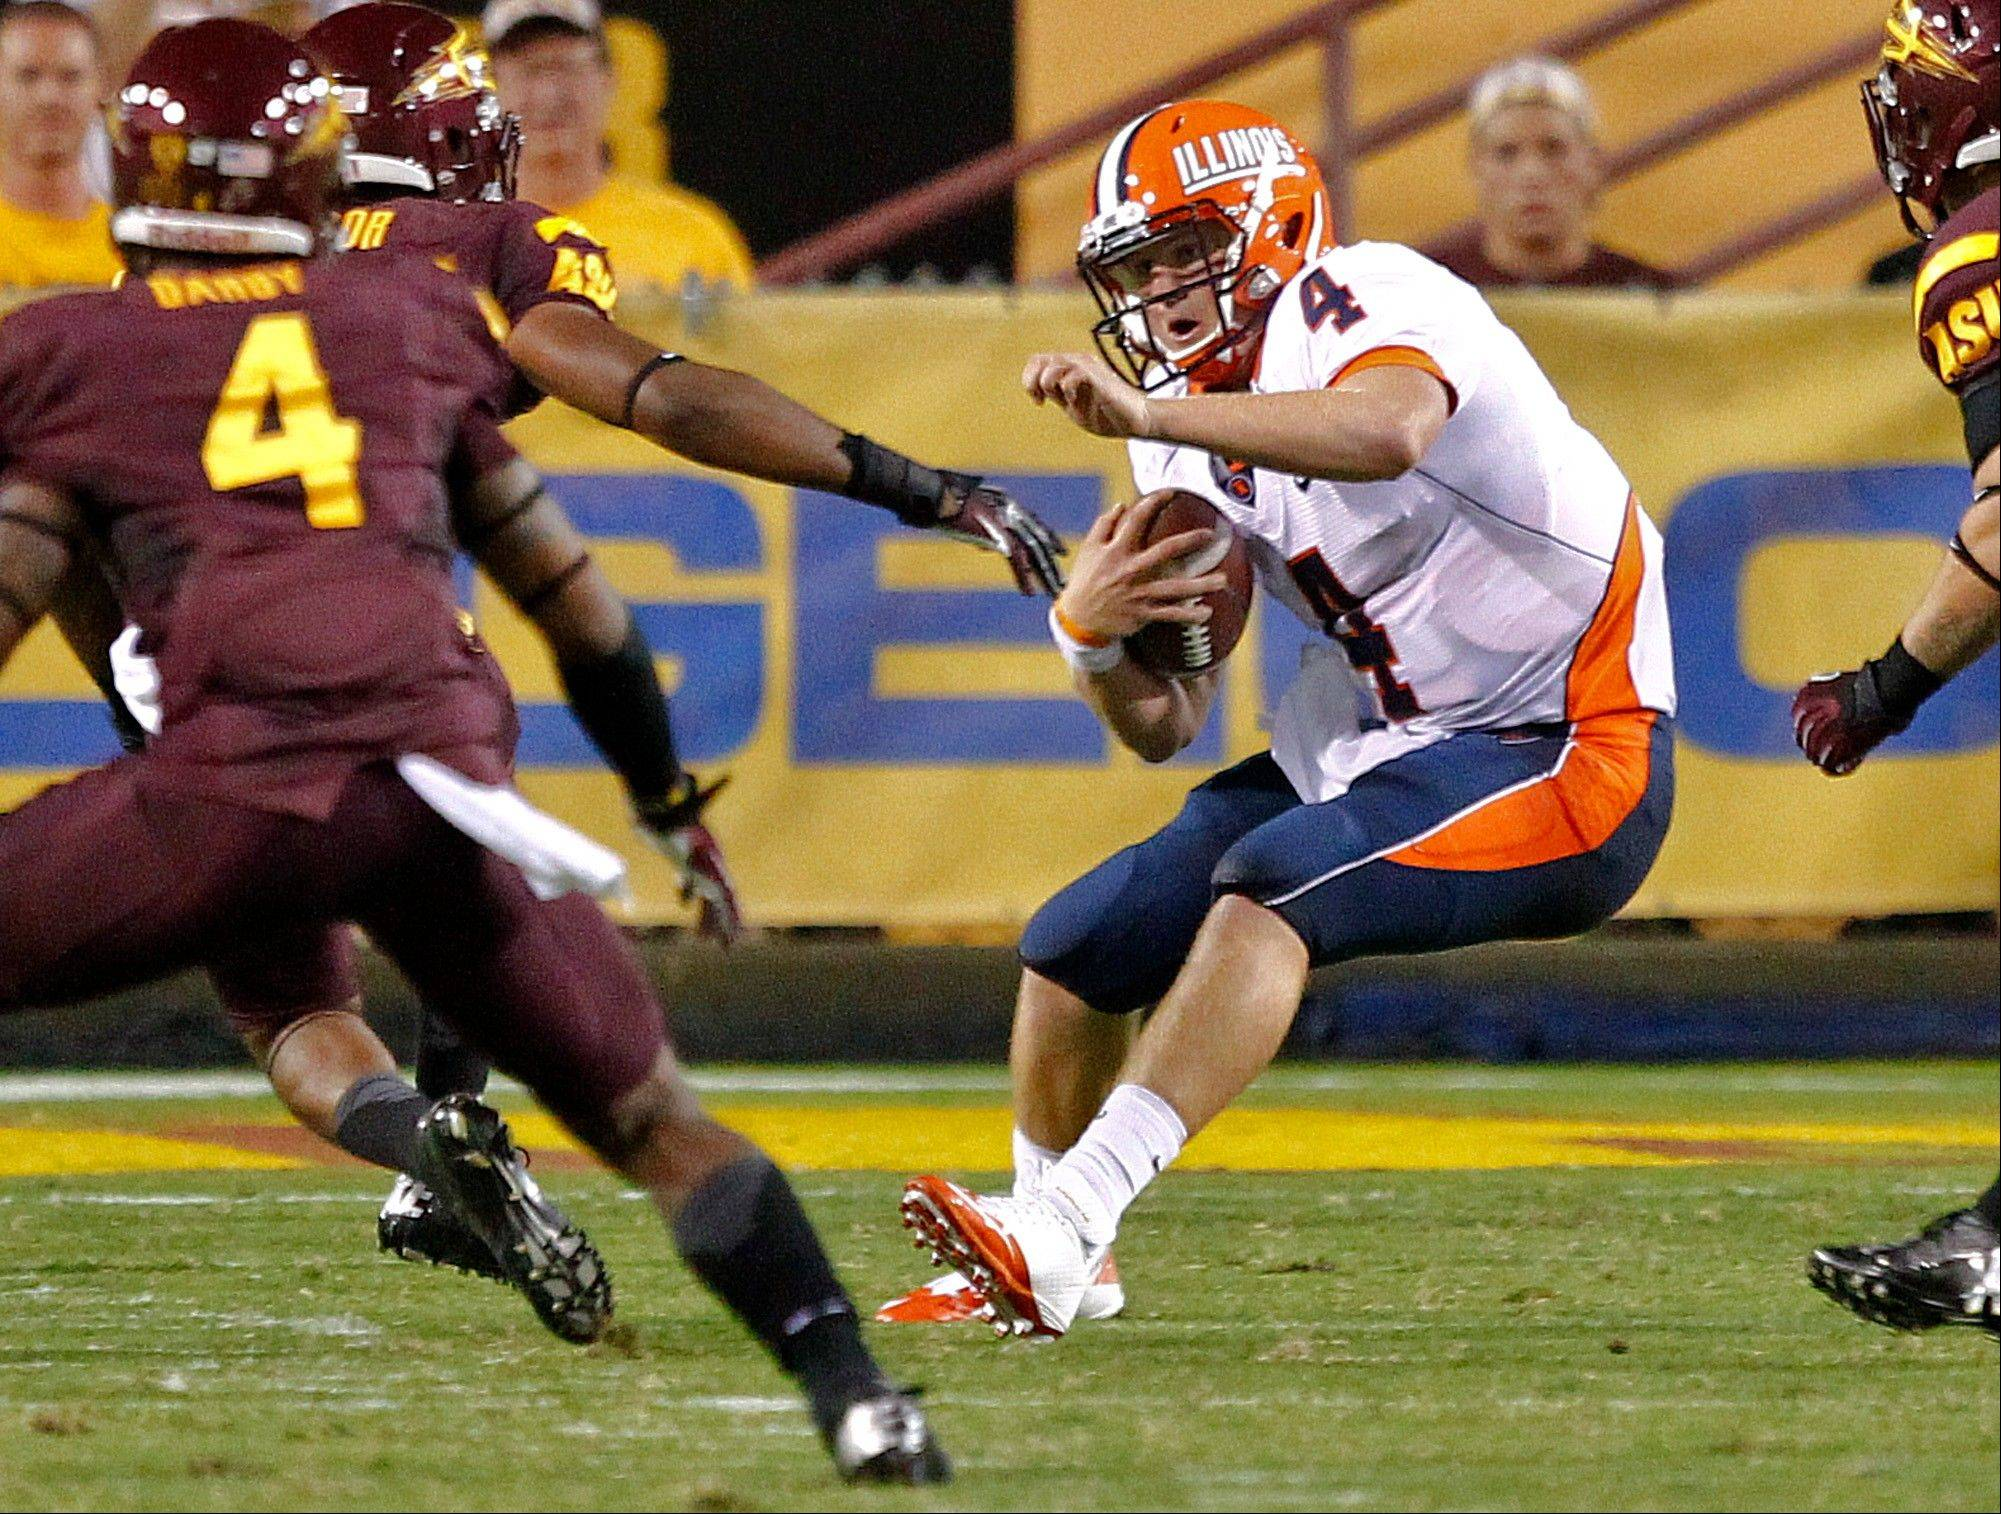 Illinois quarterback Reilly O'Toole scrambles against Arizona State last Saturday in Tempe, Ariz. O'Toole will start again for the Illini this Saturday against Charleston Southern.